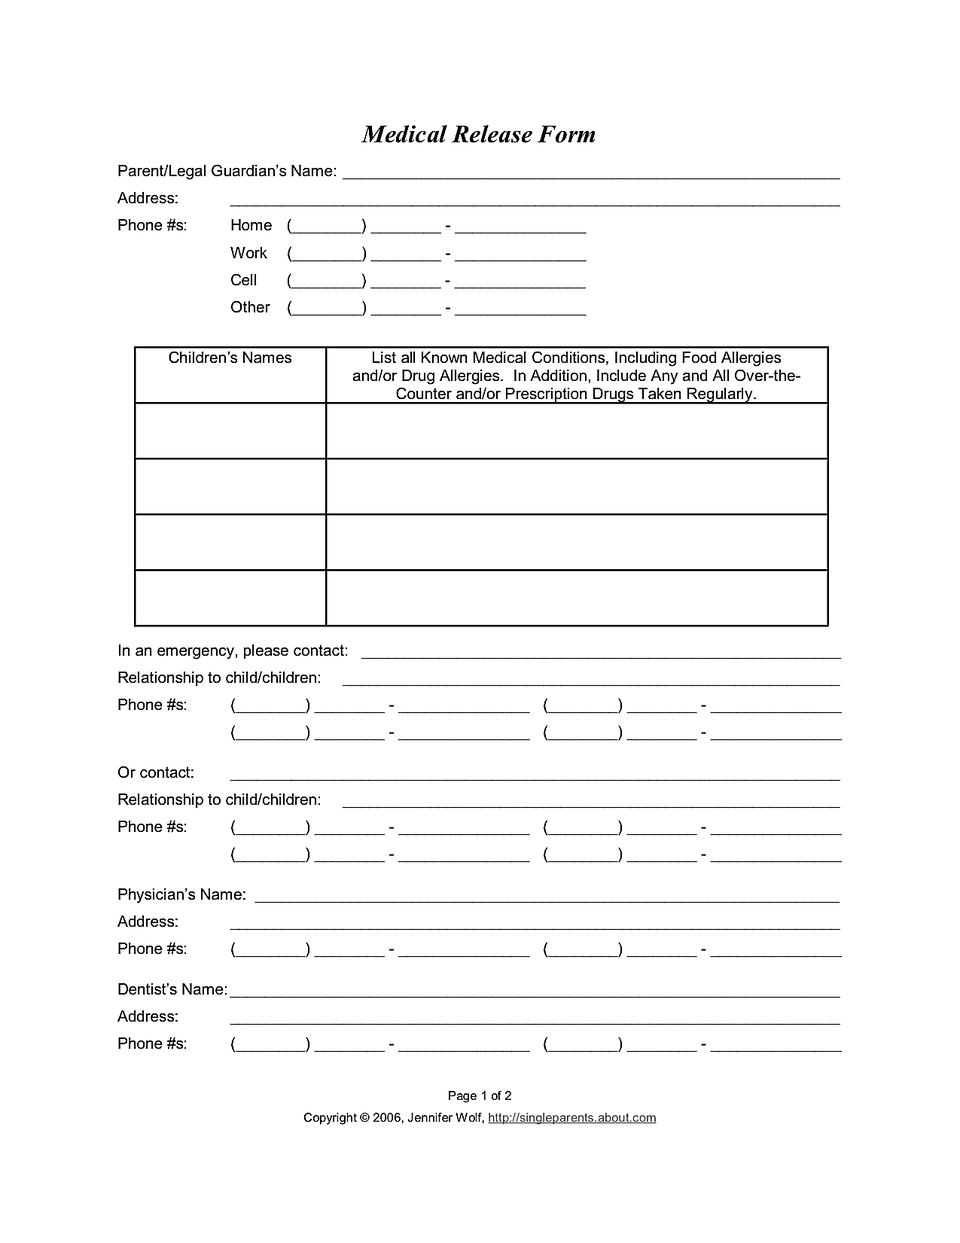 Medical Release Form | bravebtr